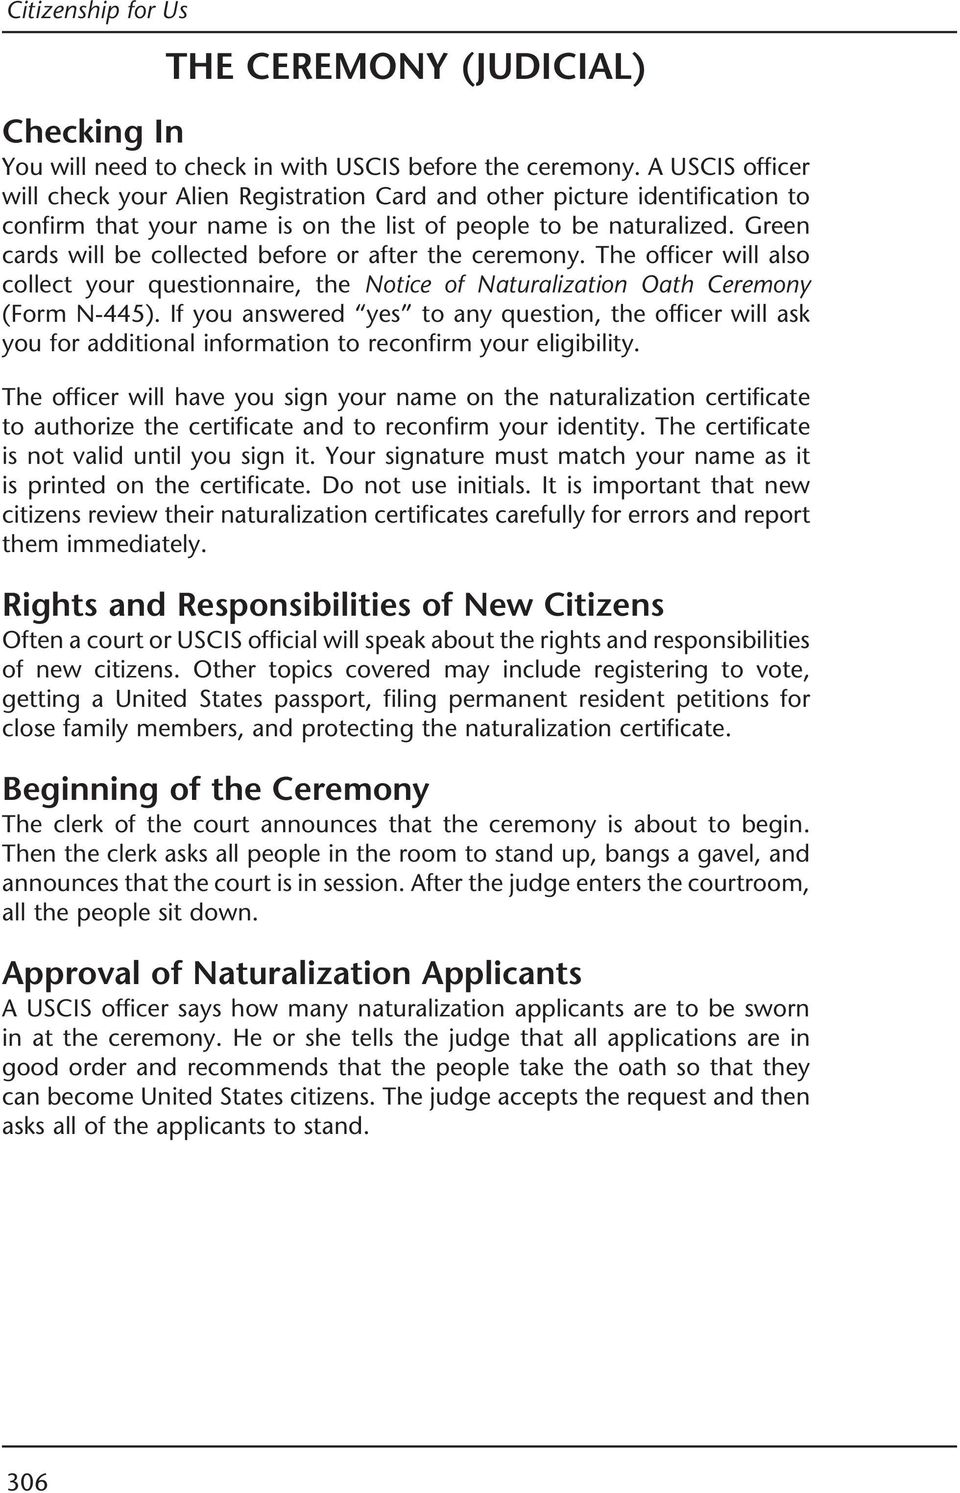 Green cards will be collected before or after the ceremony. The officer will also collect your questionnaire, the Notice of Naturalization Oath Ceremony (Form N-445).